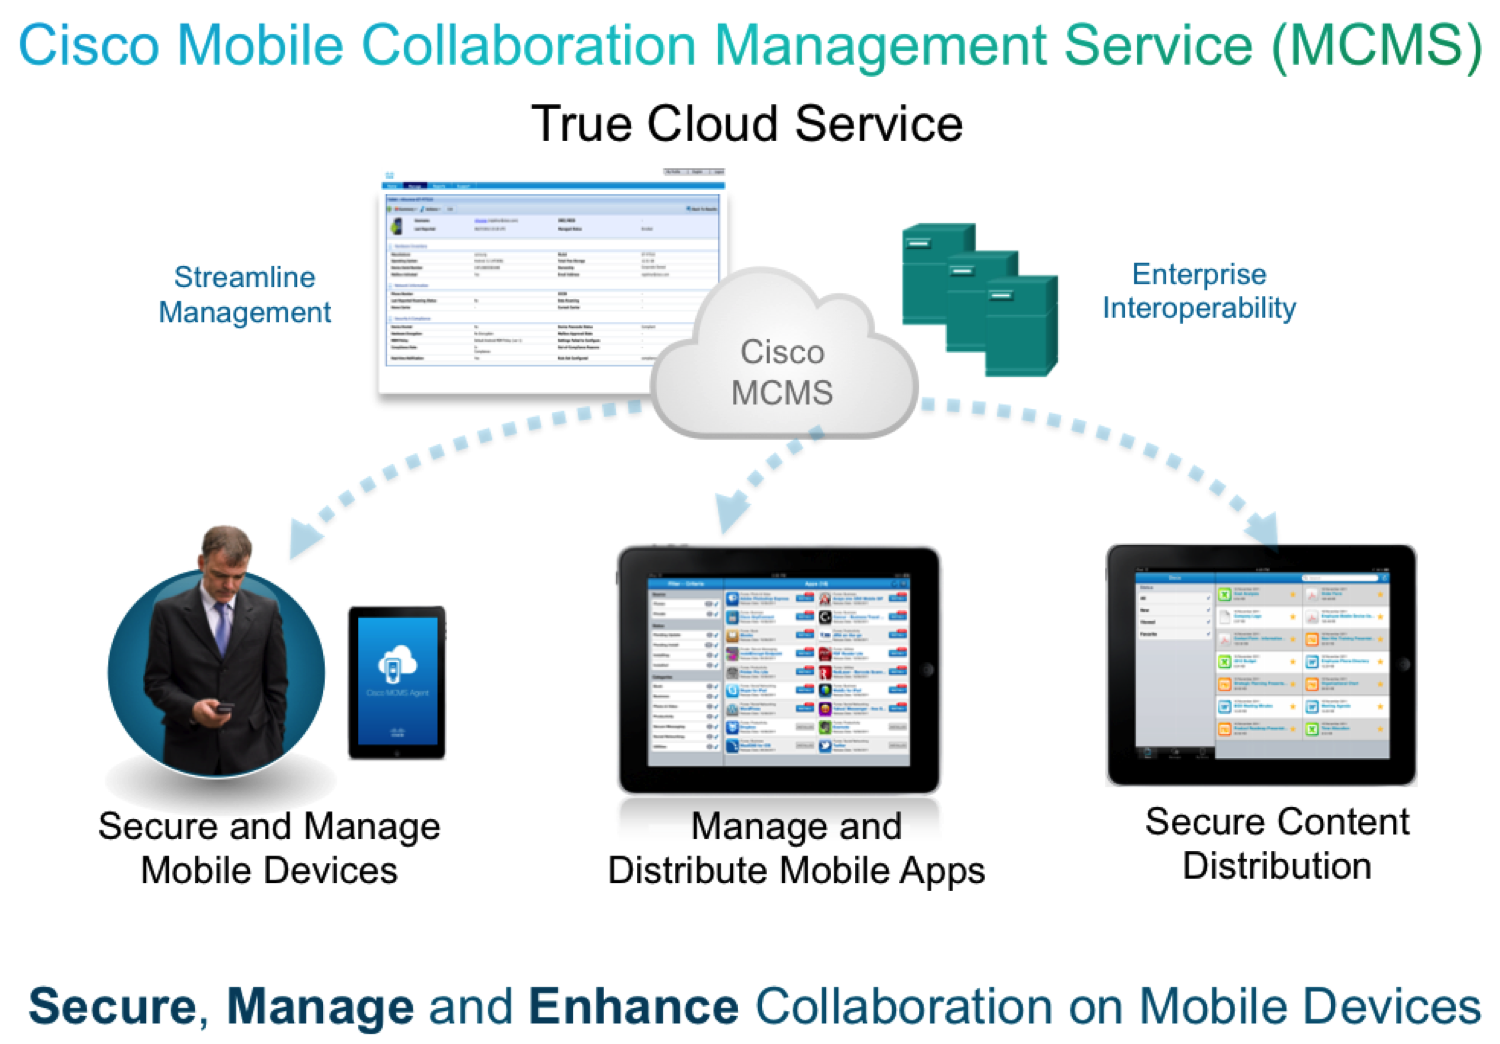 Welcome to Cisco Mobile Collaboration Services Support Community